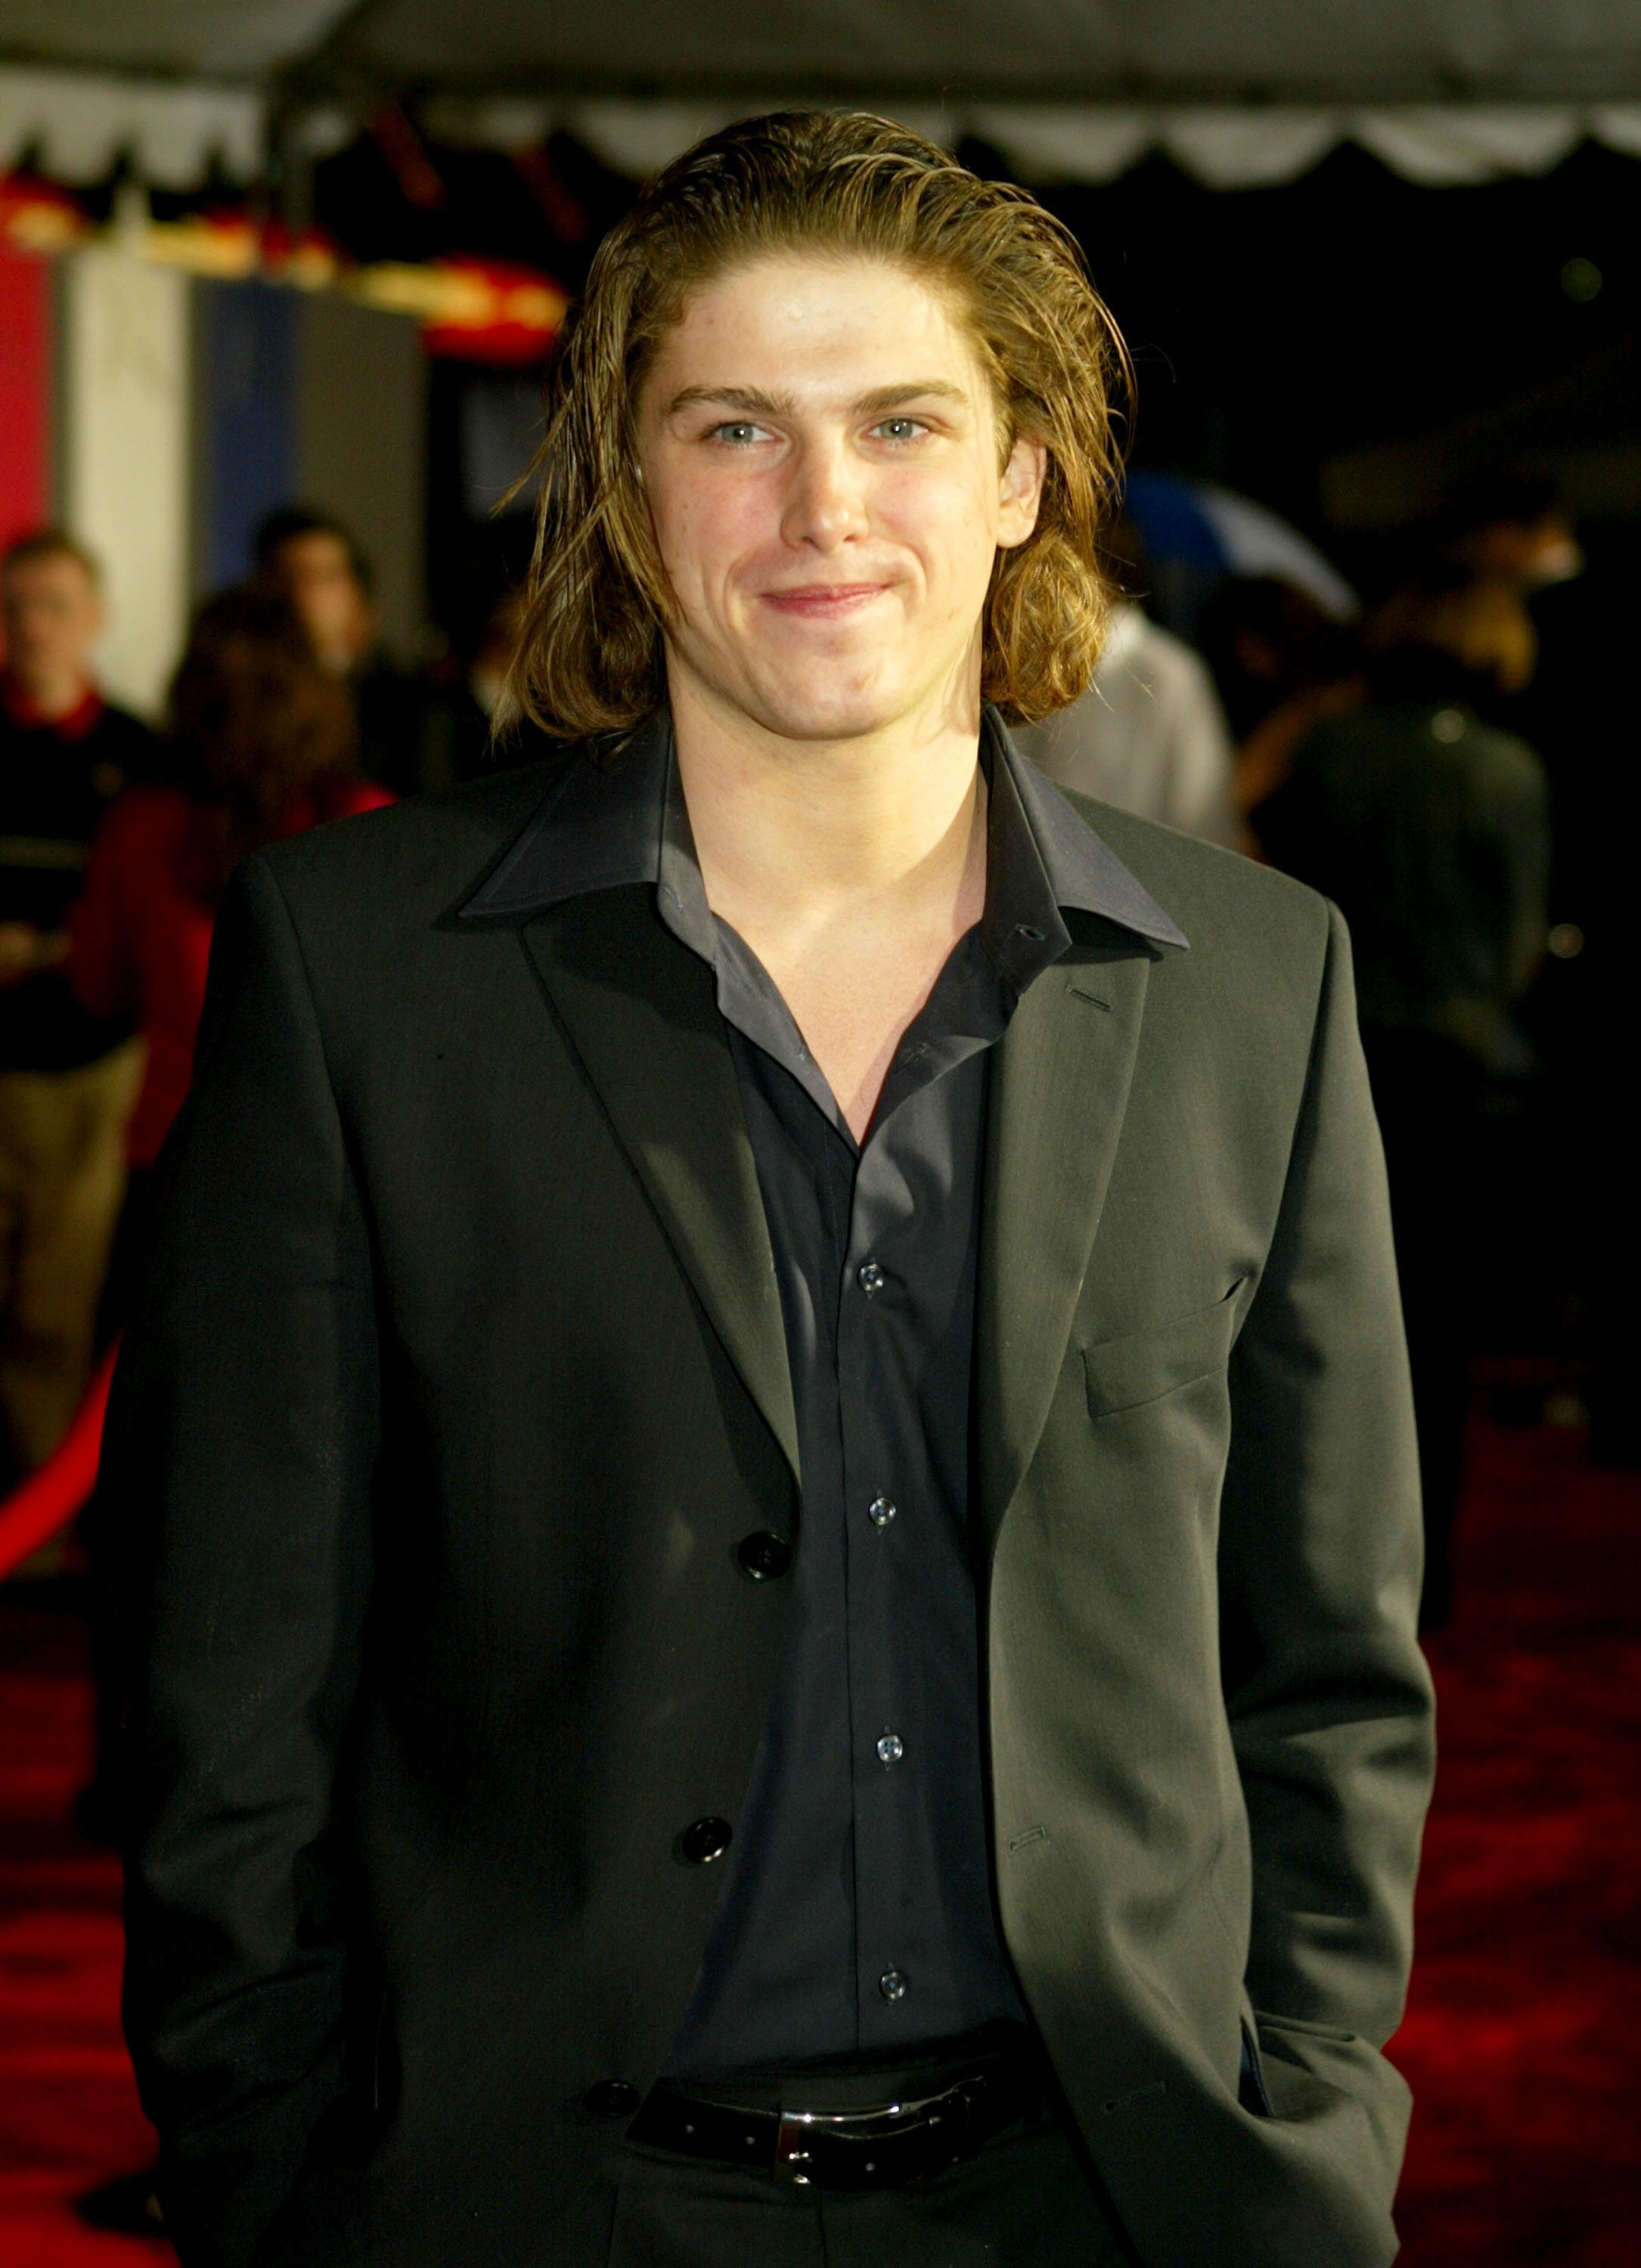 Michael at the 'Miracle' premiere in